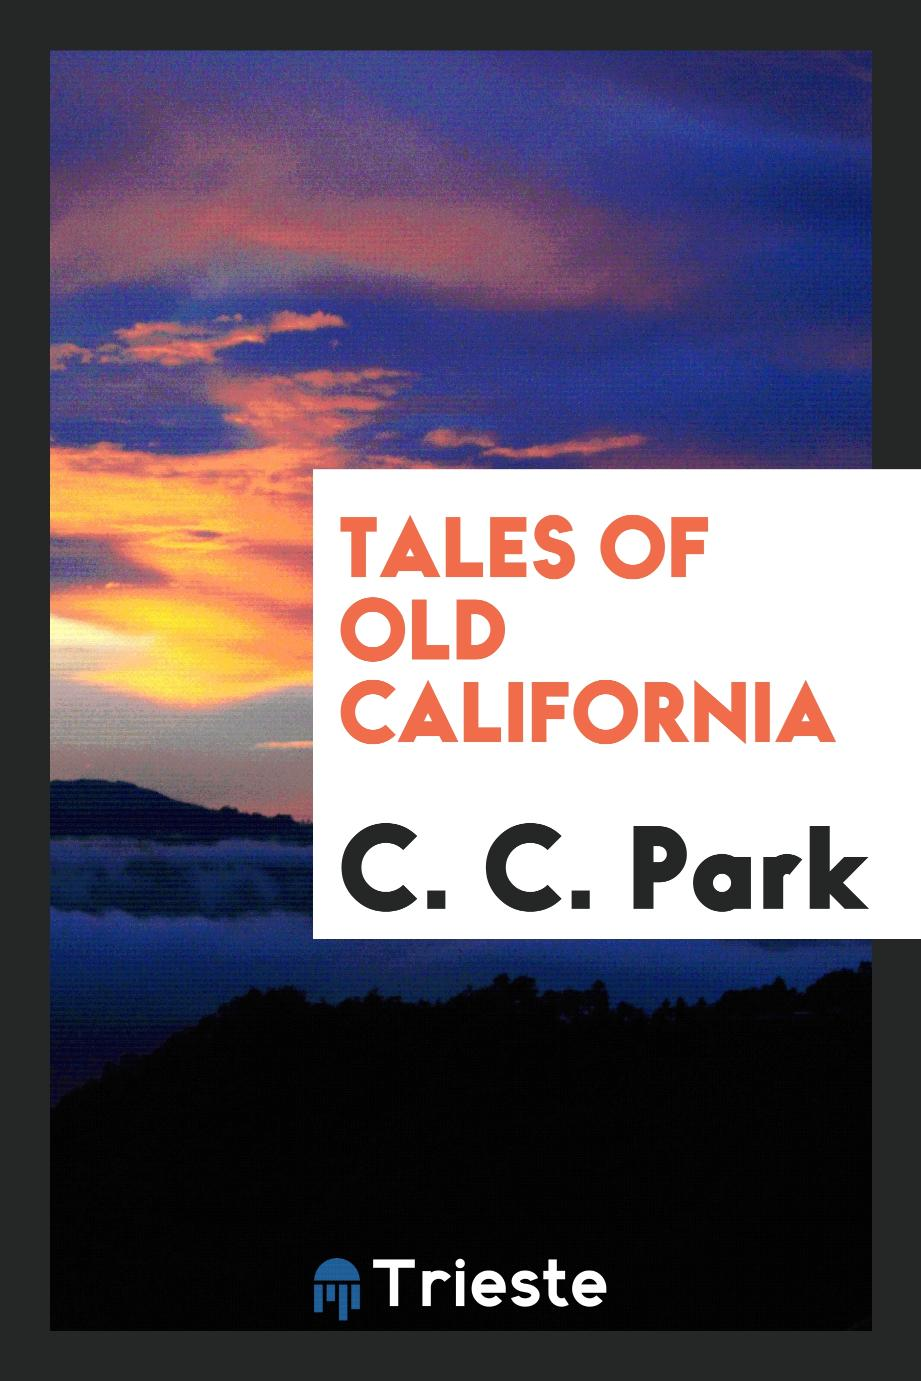 Tales of old California